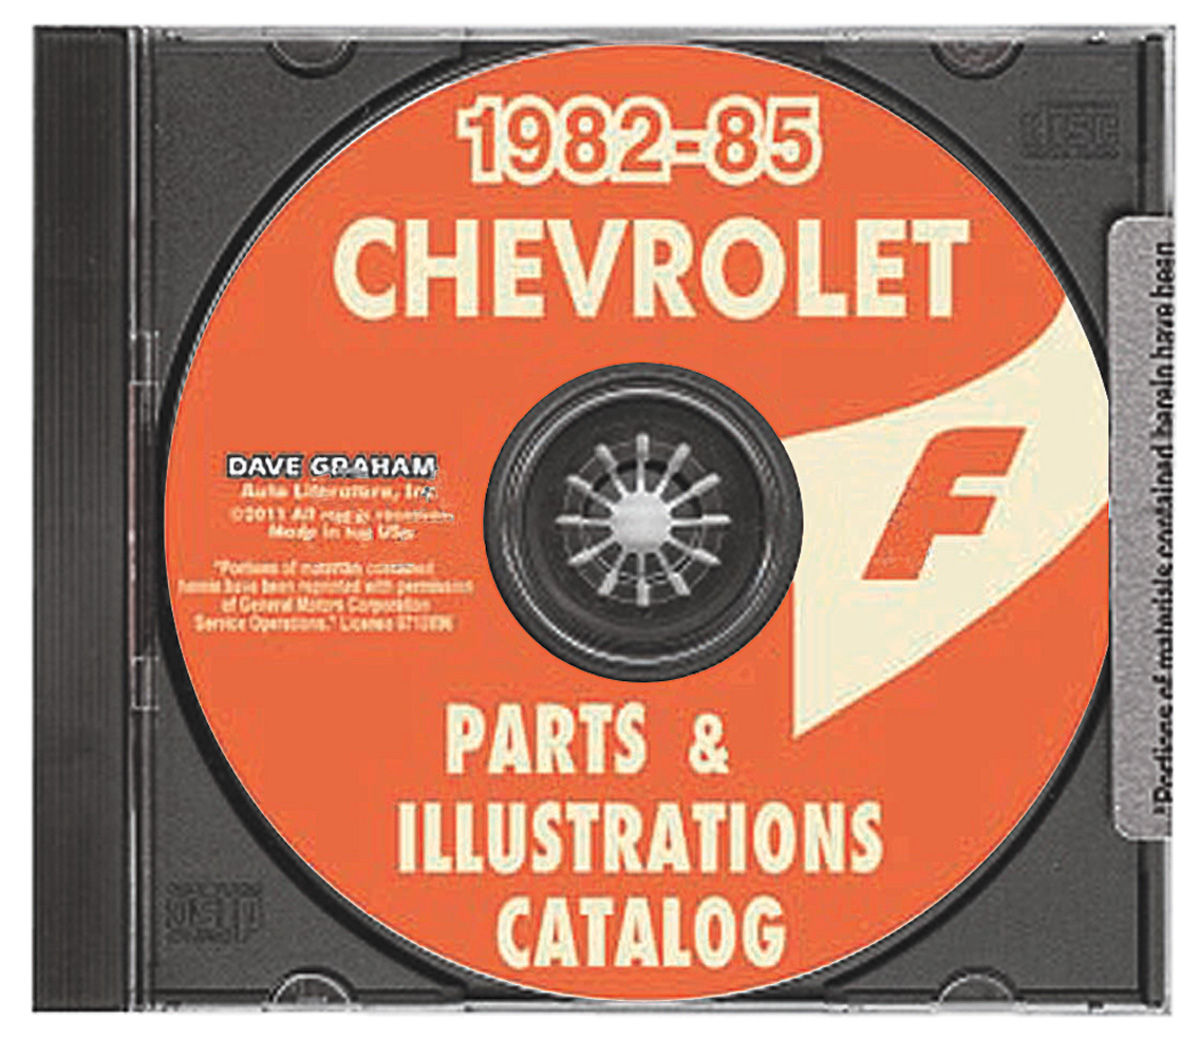 General motors parts and accessories guide cd rom for General motors parts department